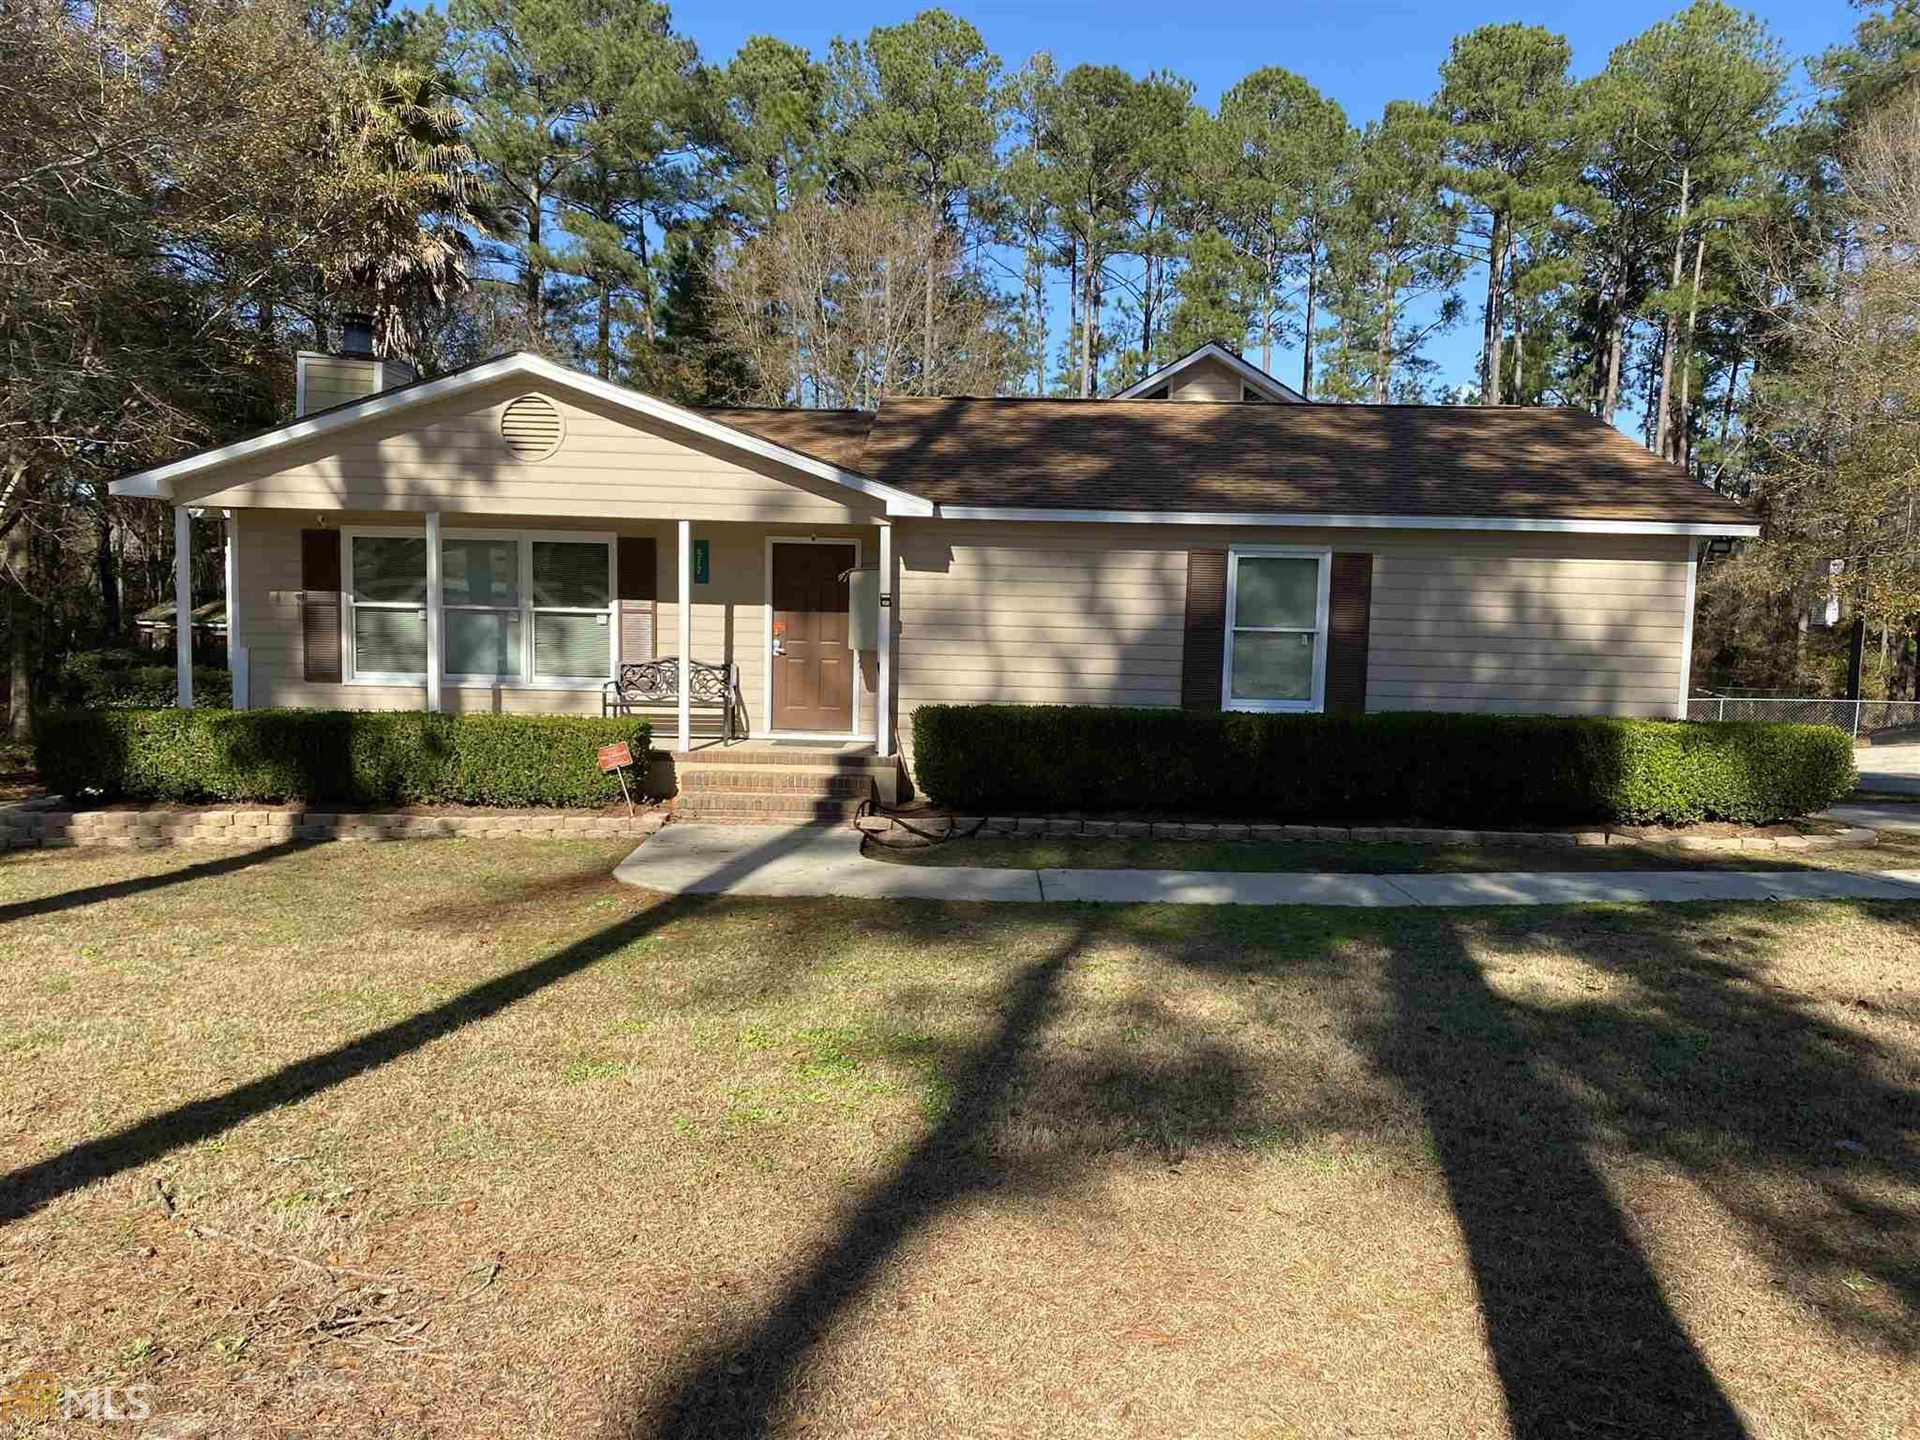 517 Pleasant Point Rd, Statesboro, GA 30458 - #: 8908760